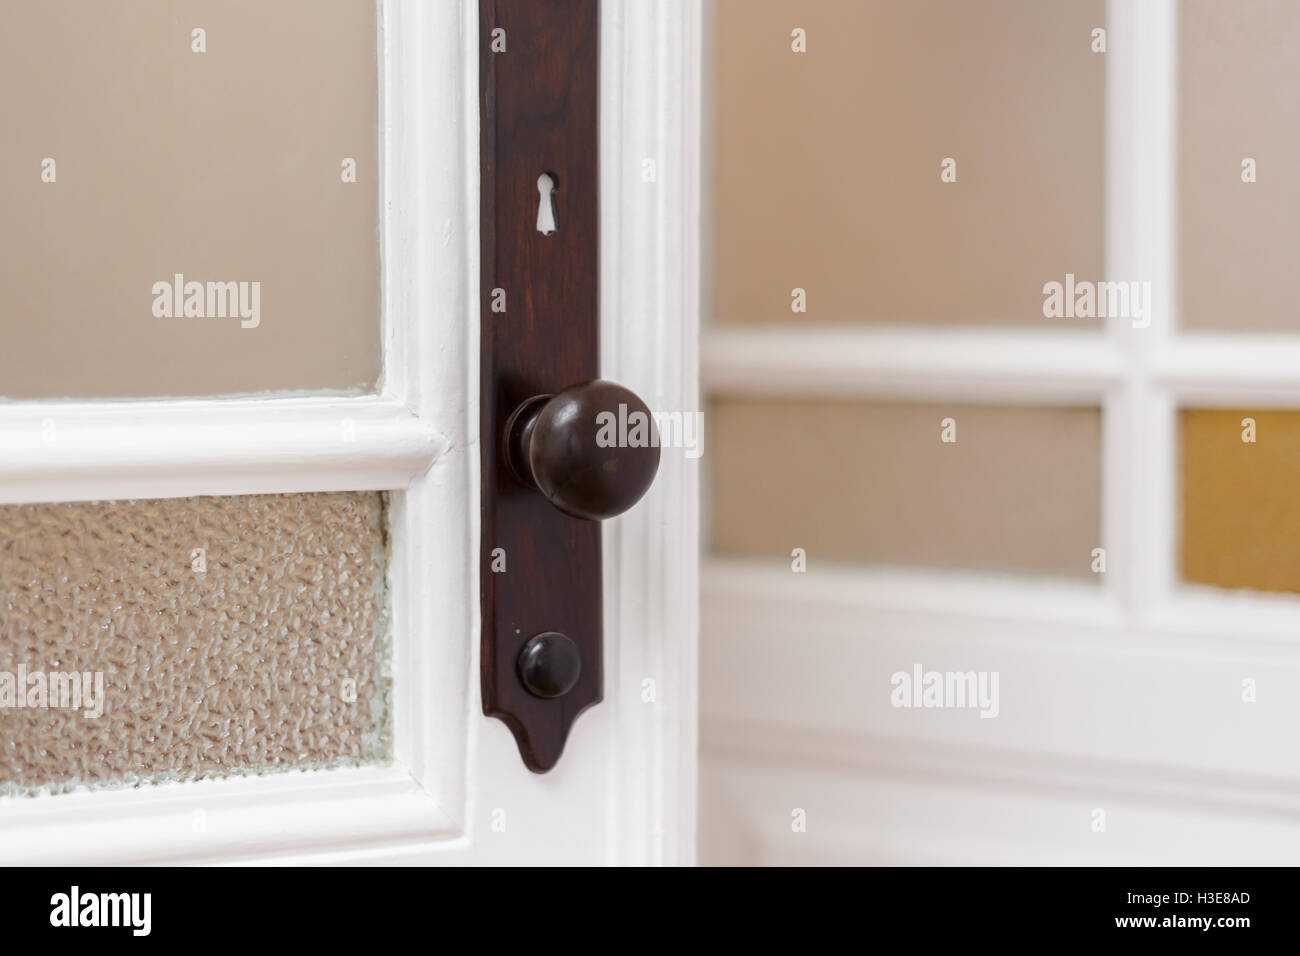 Antique door handle with stained glass frames - Antique Door Handle With Stained Glass Frames Stock Photo: 122630437